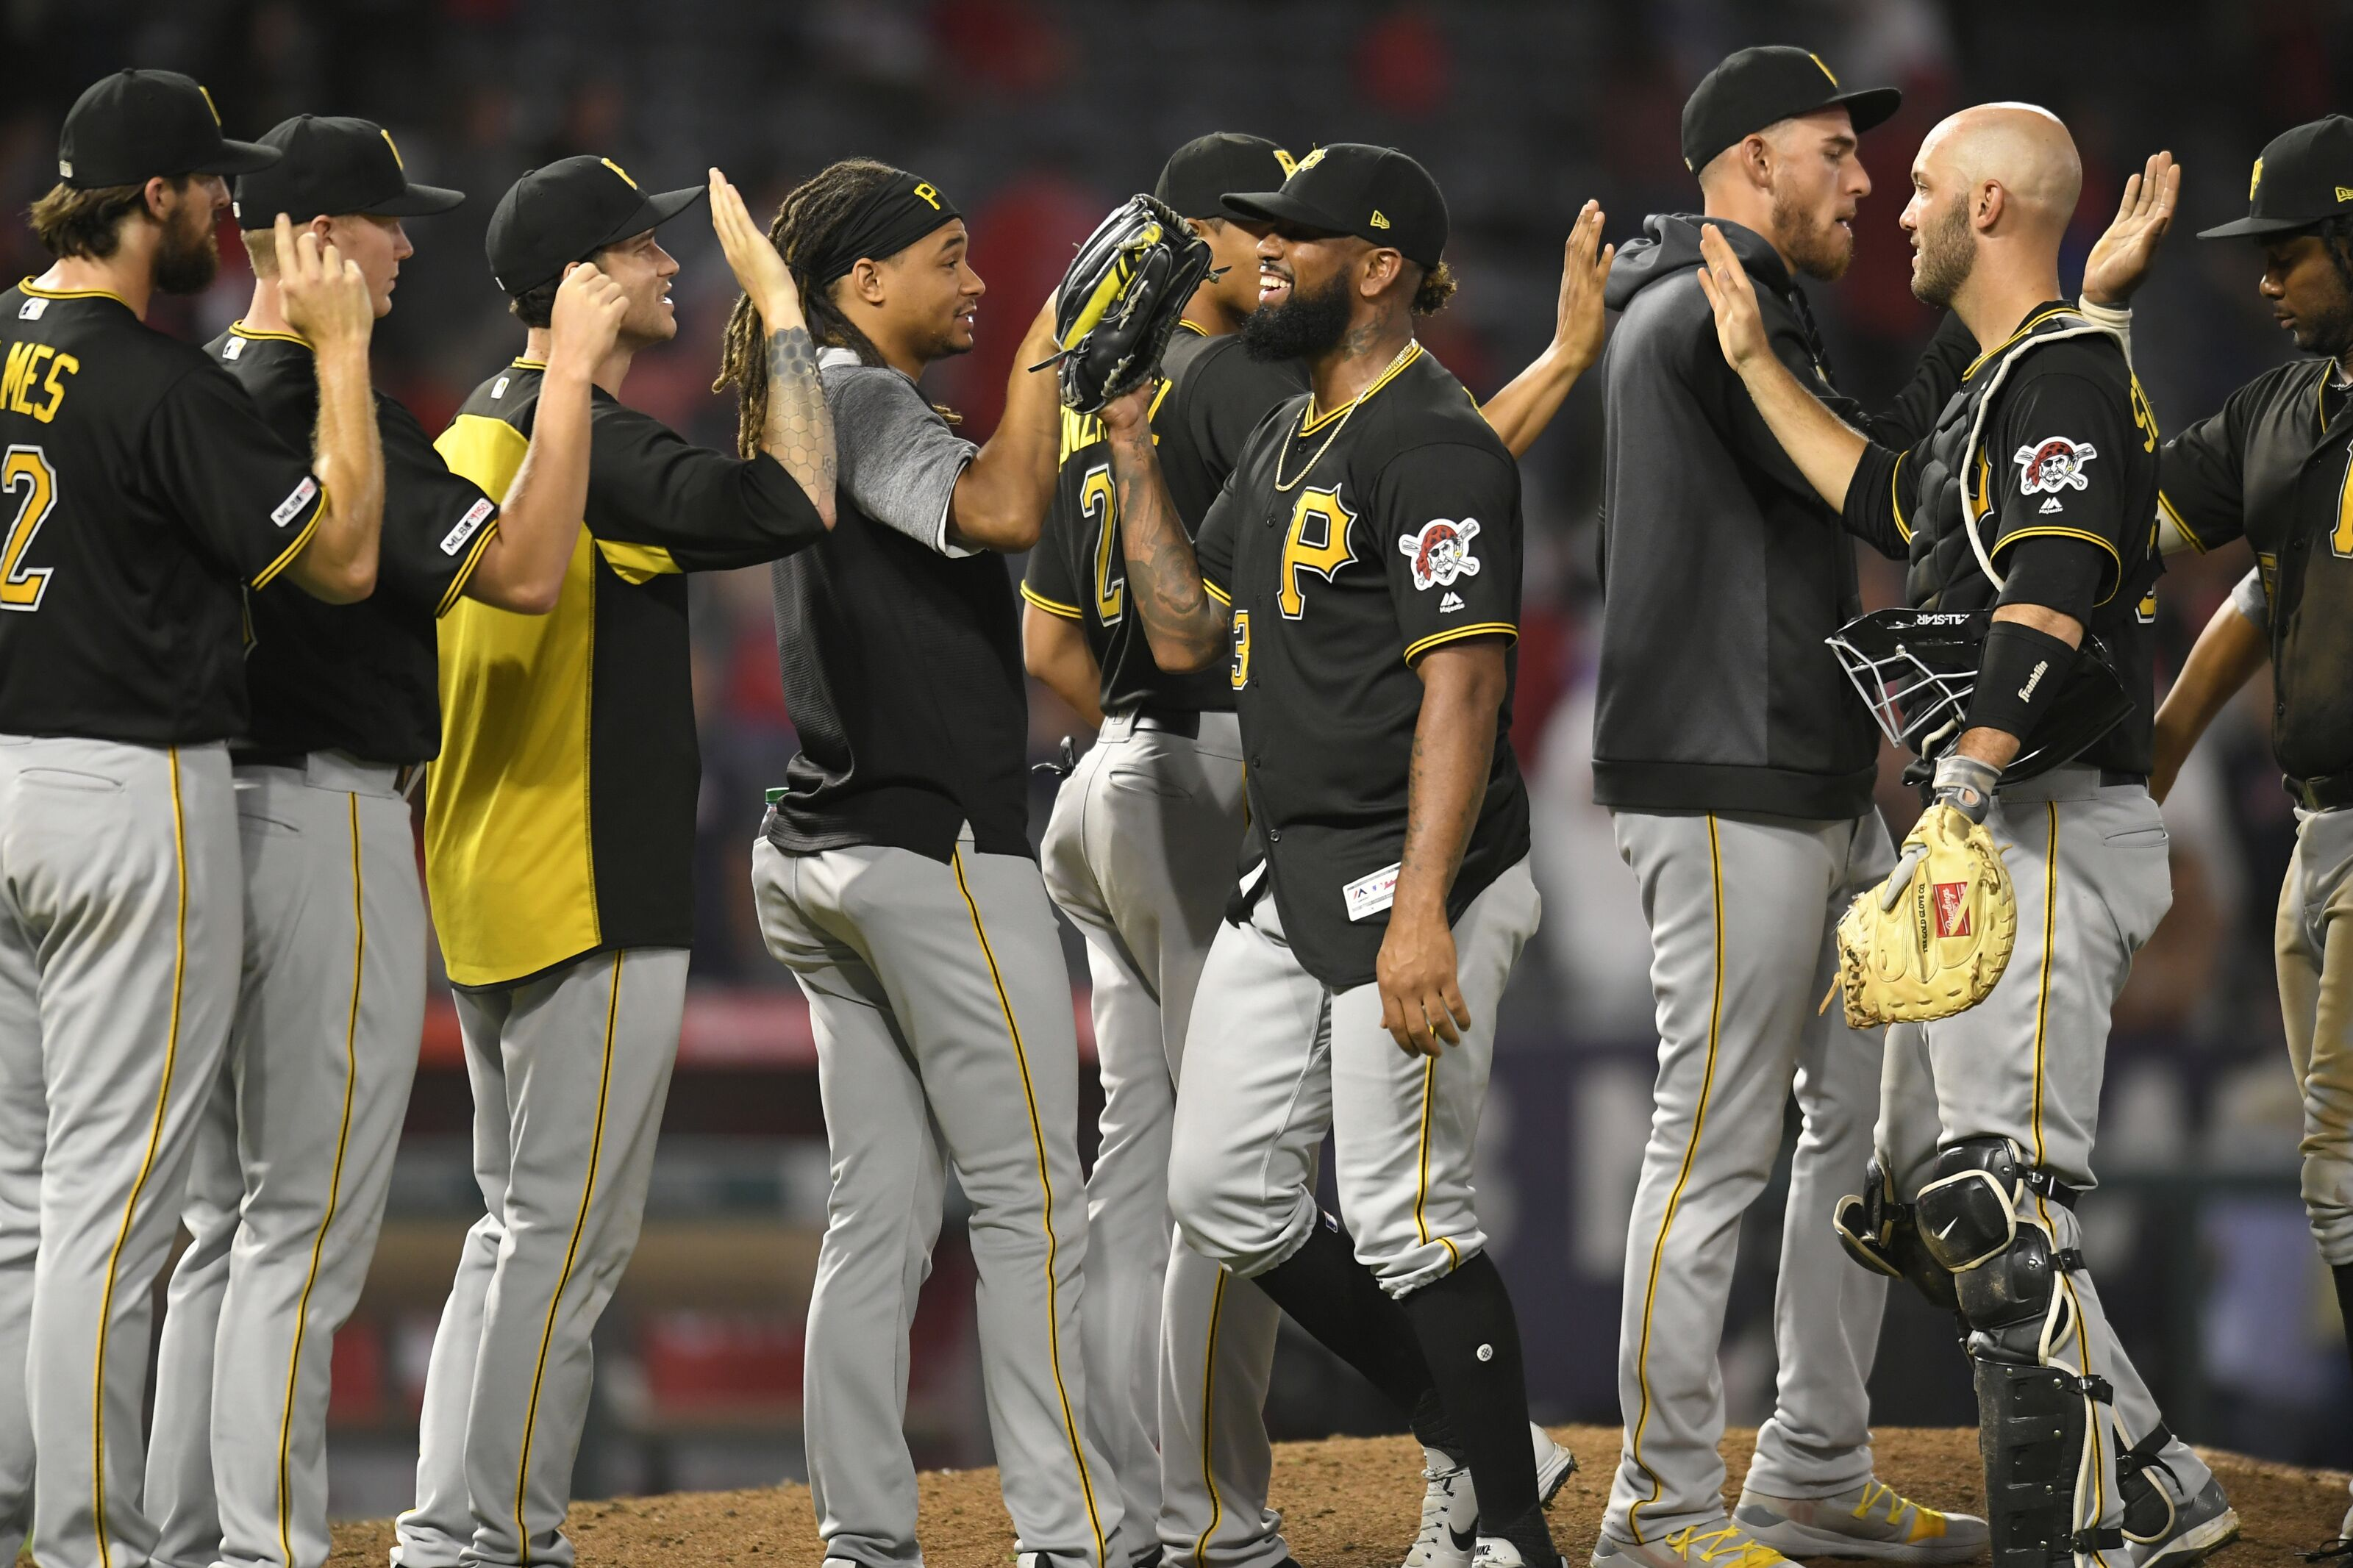 Pittsburgh Pirates: Three Takeaways From Series Win In Anaheim